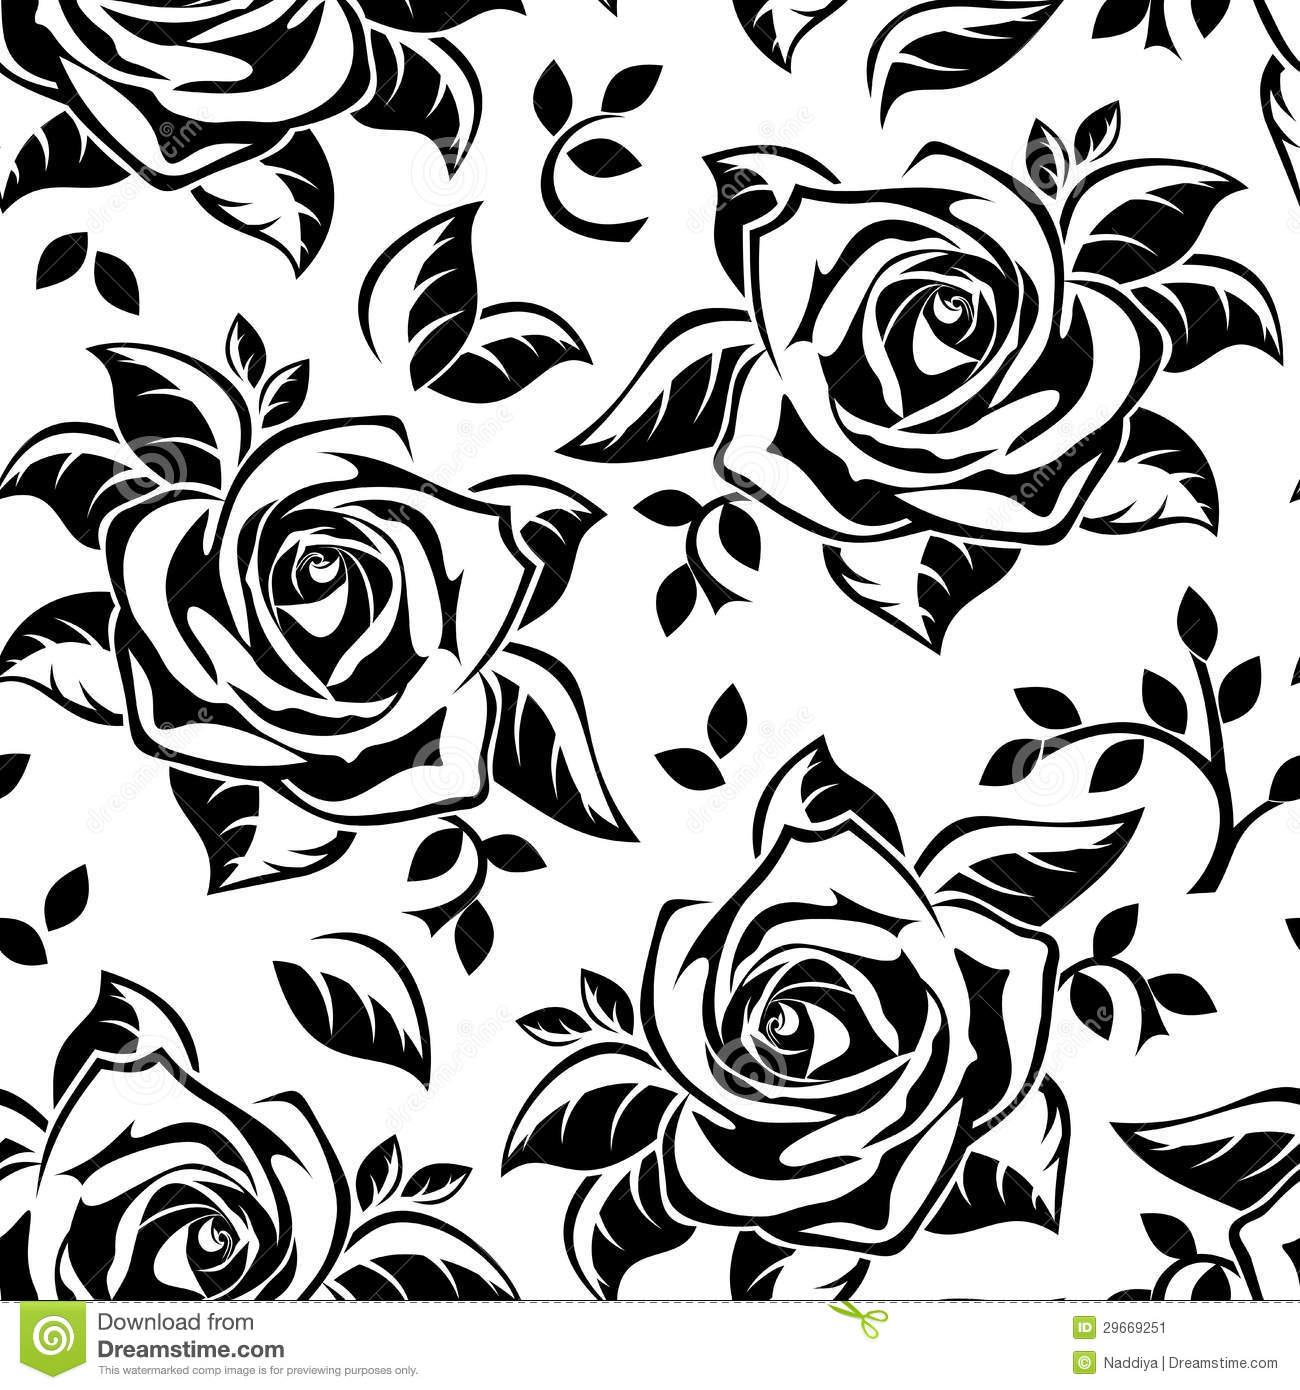 Black Flower Silhouette Pattern Royalty Free Stock Images: Vector Sseamless Pattern With Roses Silhouettes. Stock